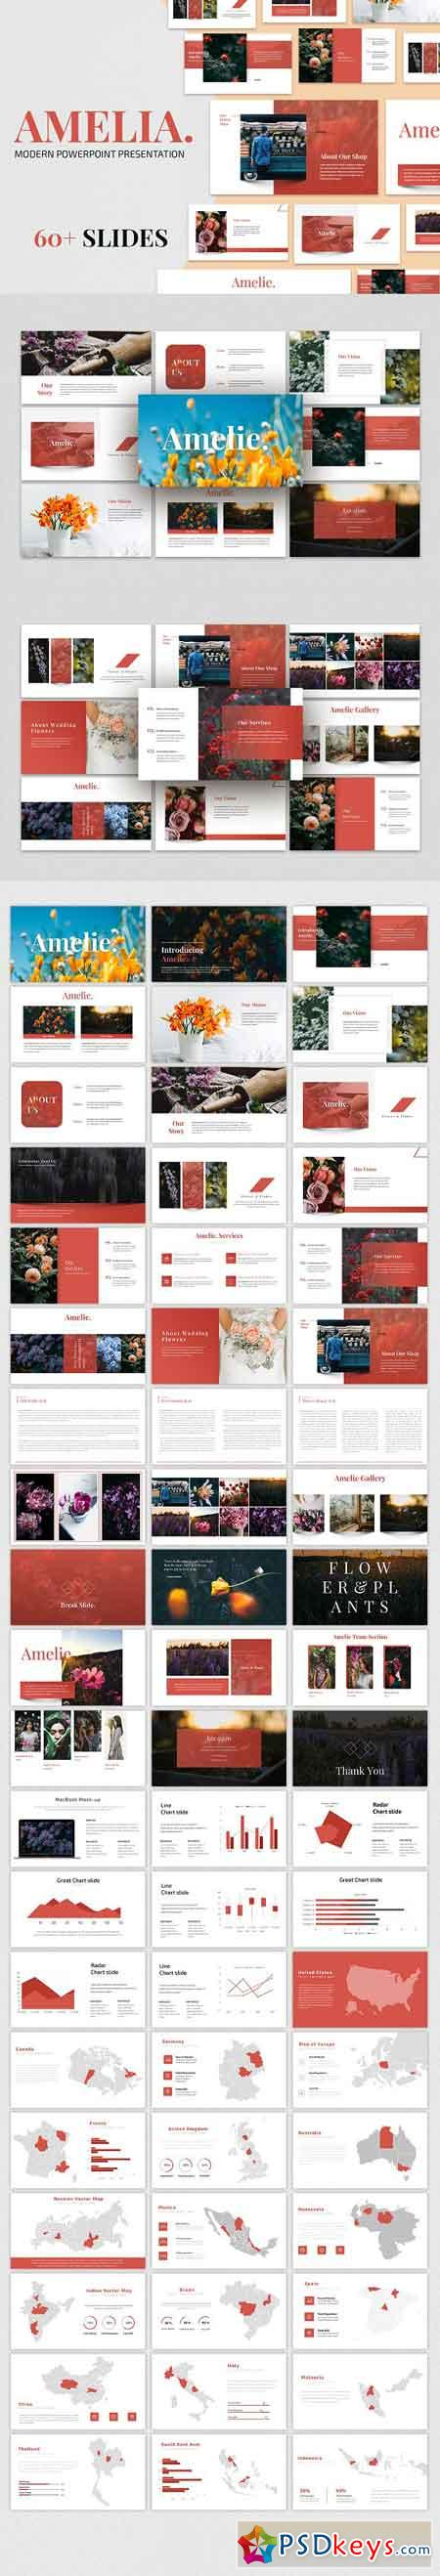 AMELIA - Modern Powerpoint Template 2868665